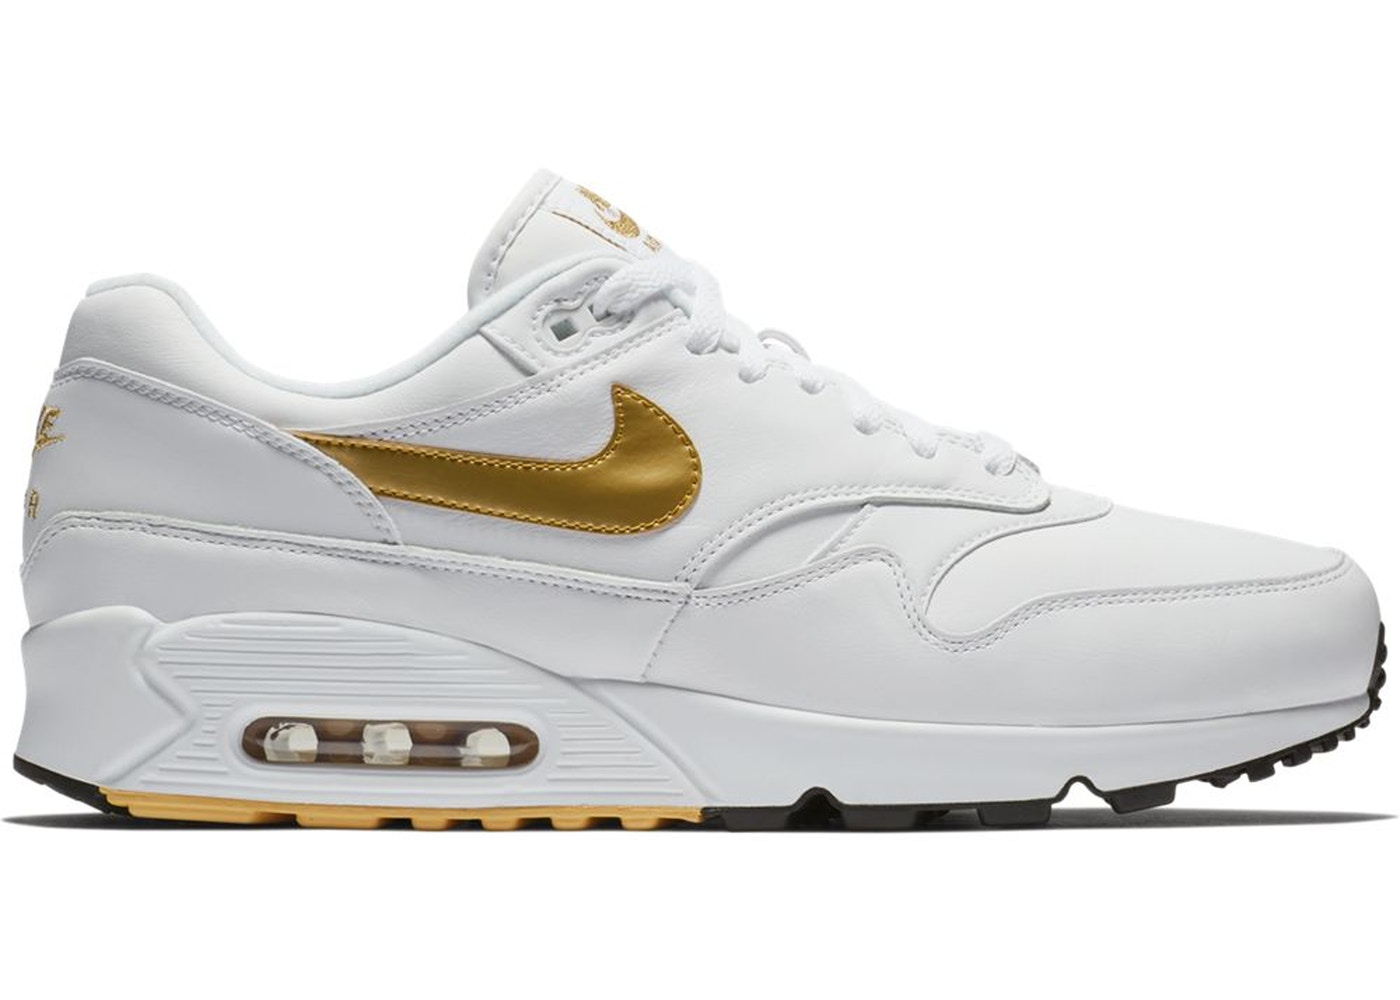 Air Max 901 White Gold